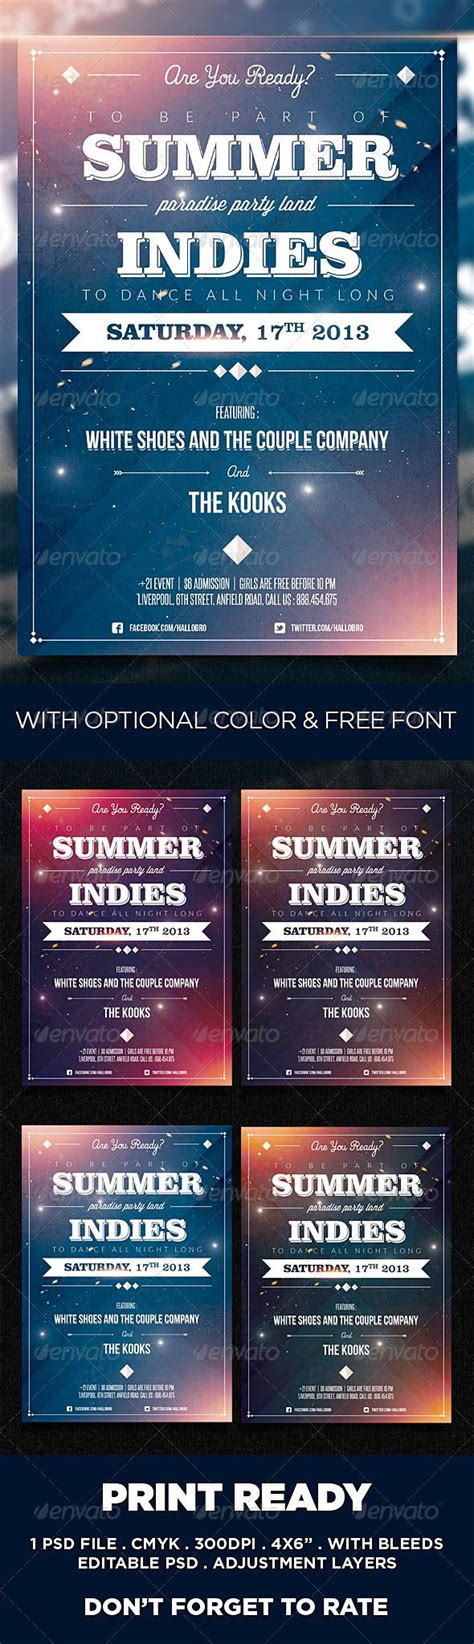 poster package layout 95 best print templates images on pinterest print